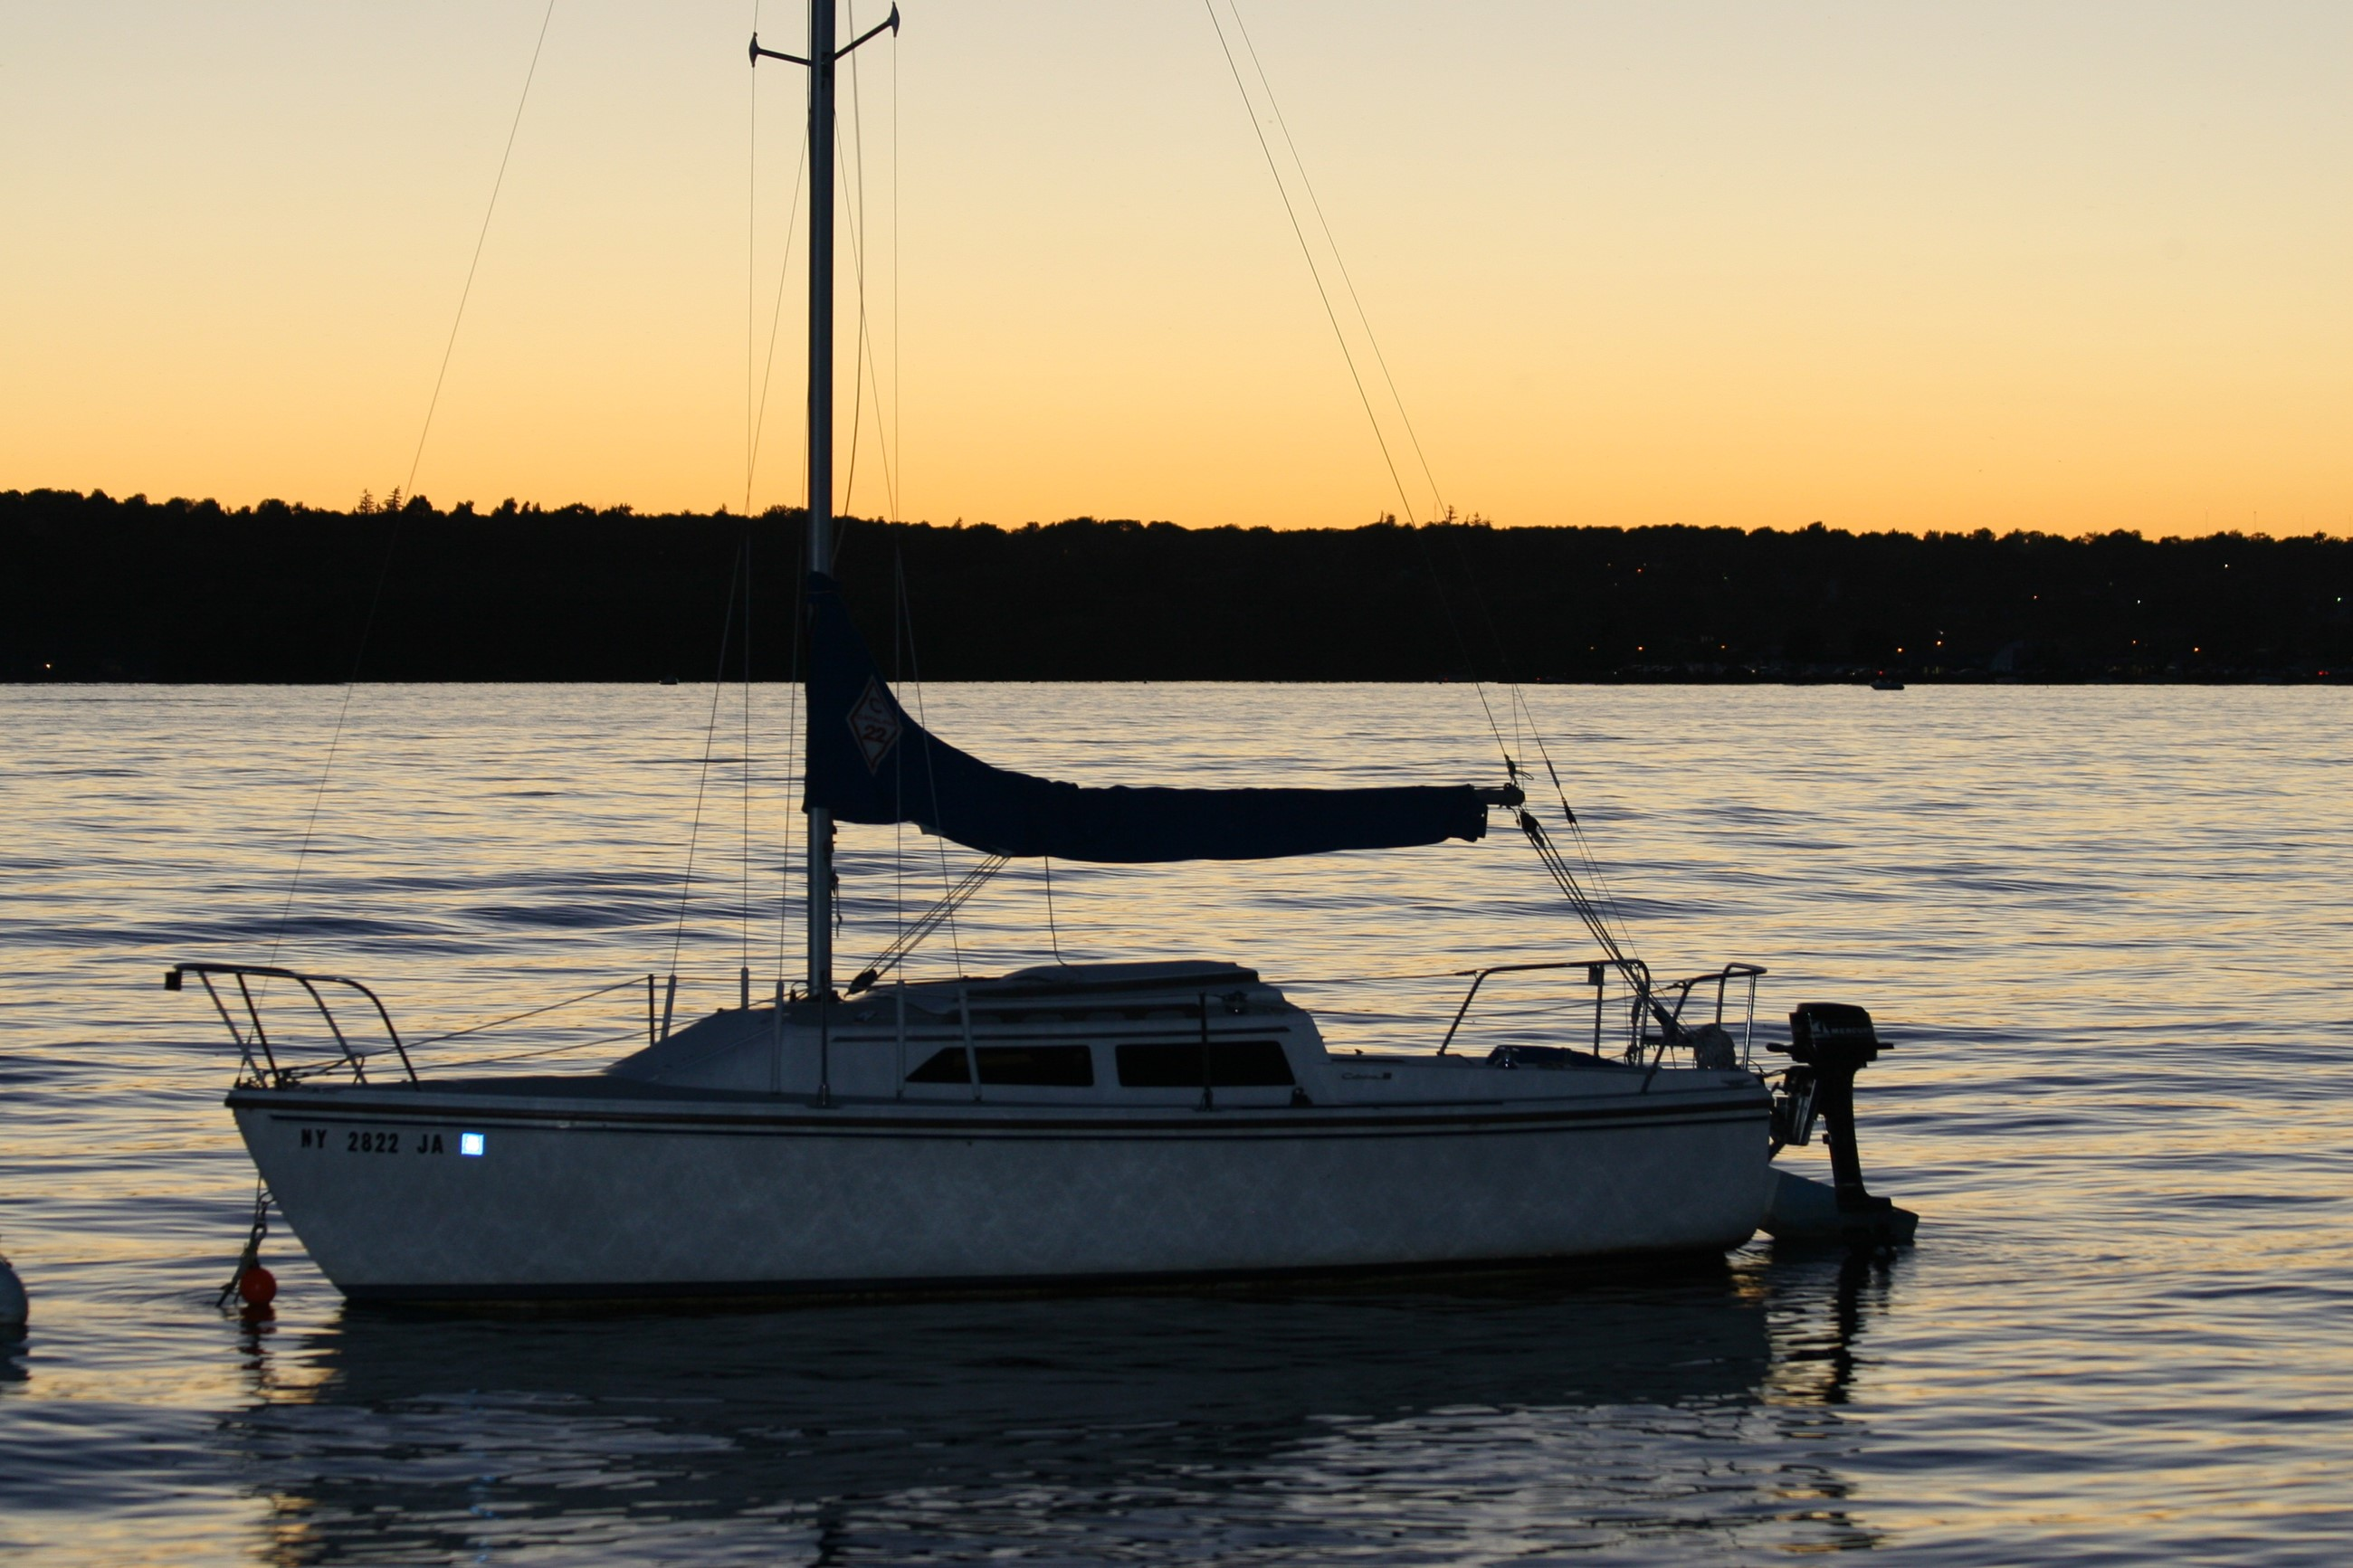 Boat at rest on Canandaigua Lake at sunset